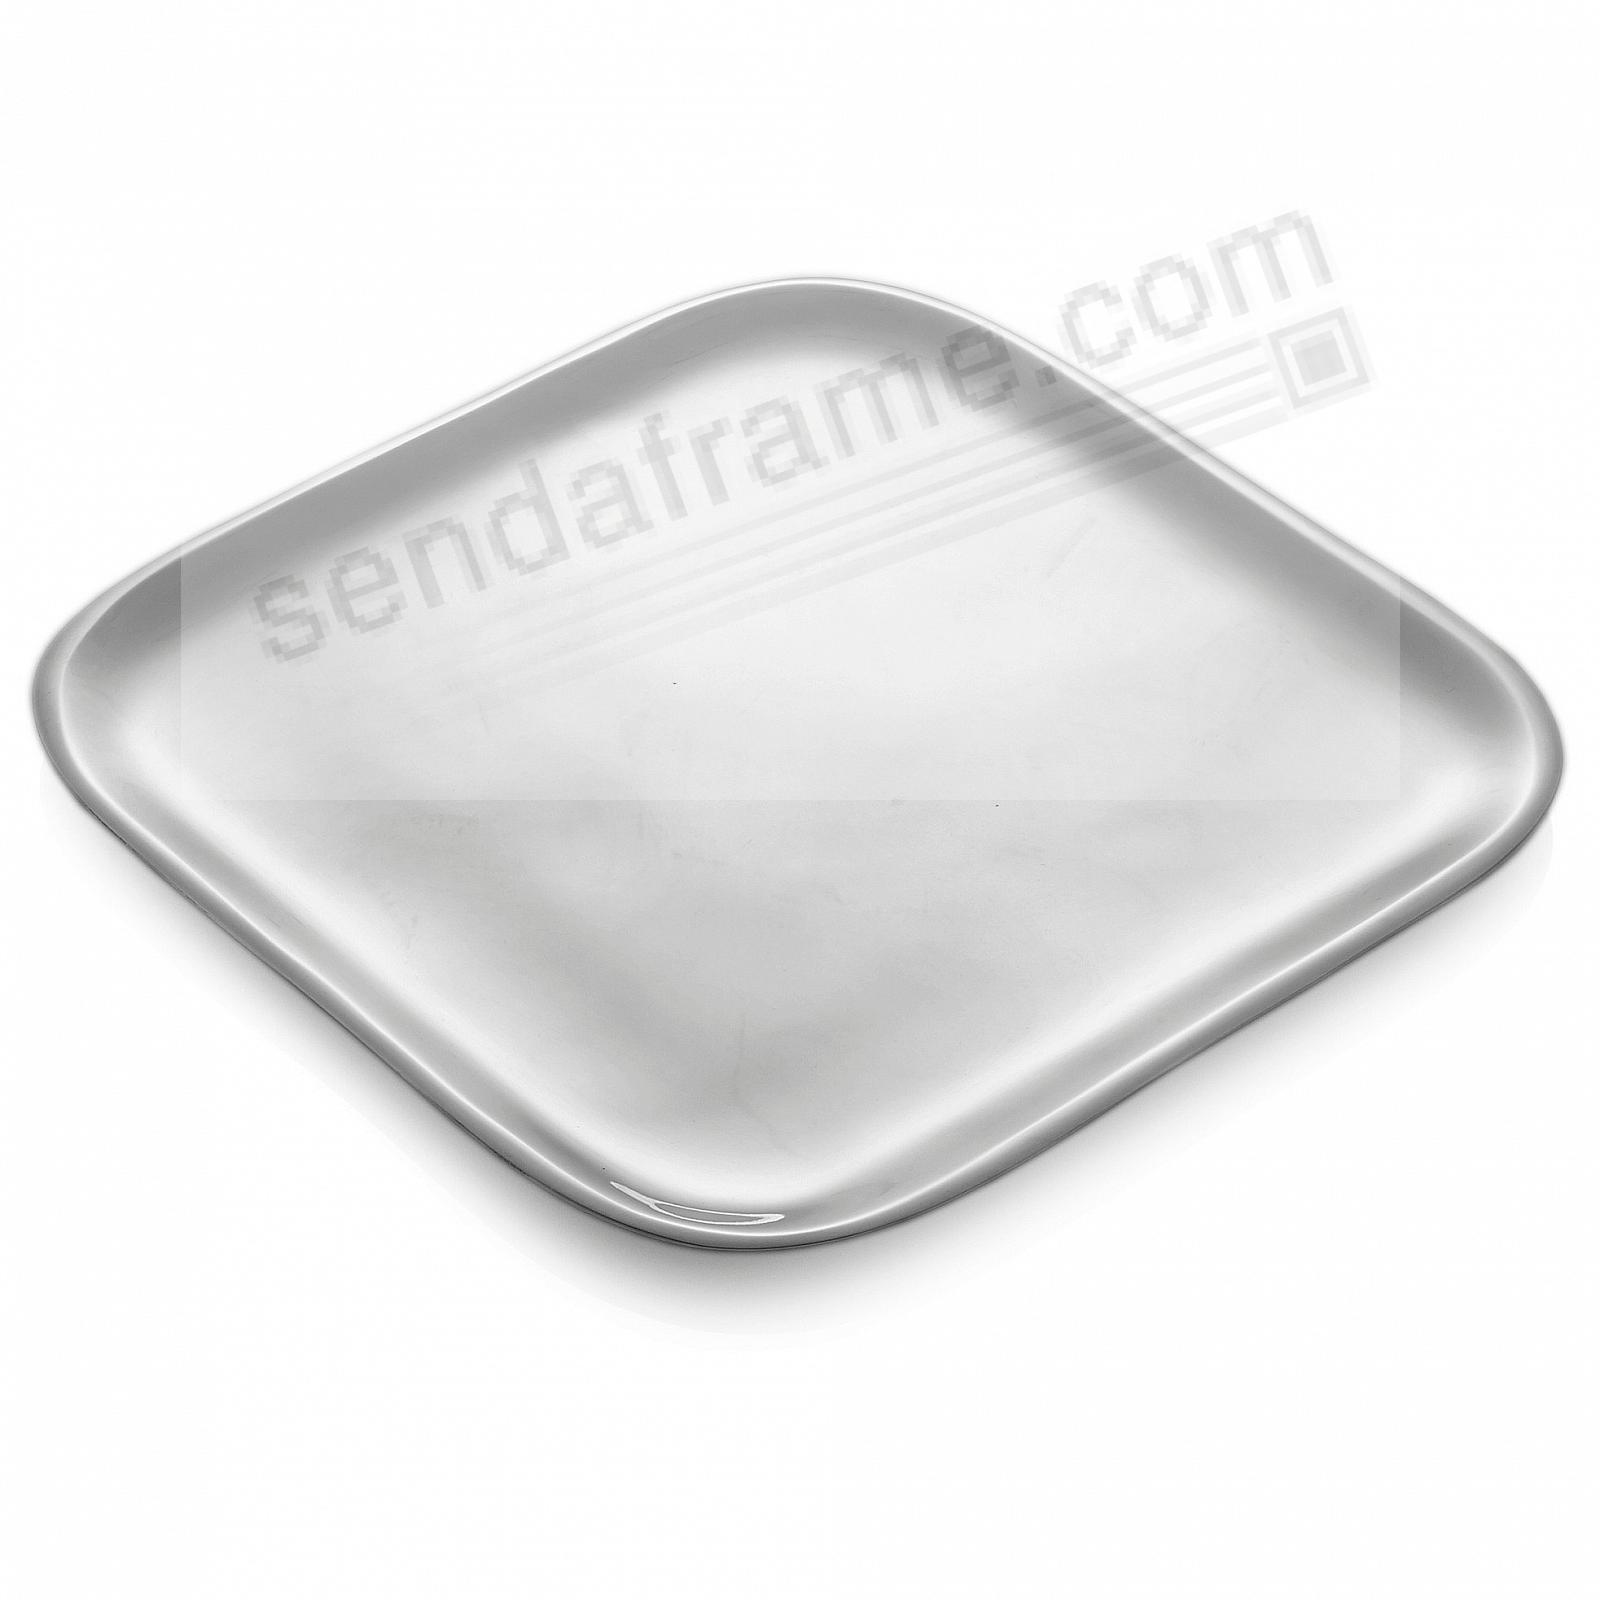 The Original Museum 11-in SQUARE PLATTER by Nambe®